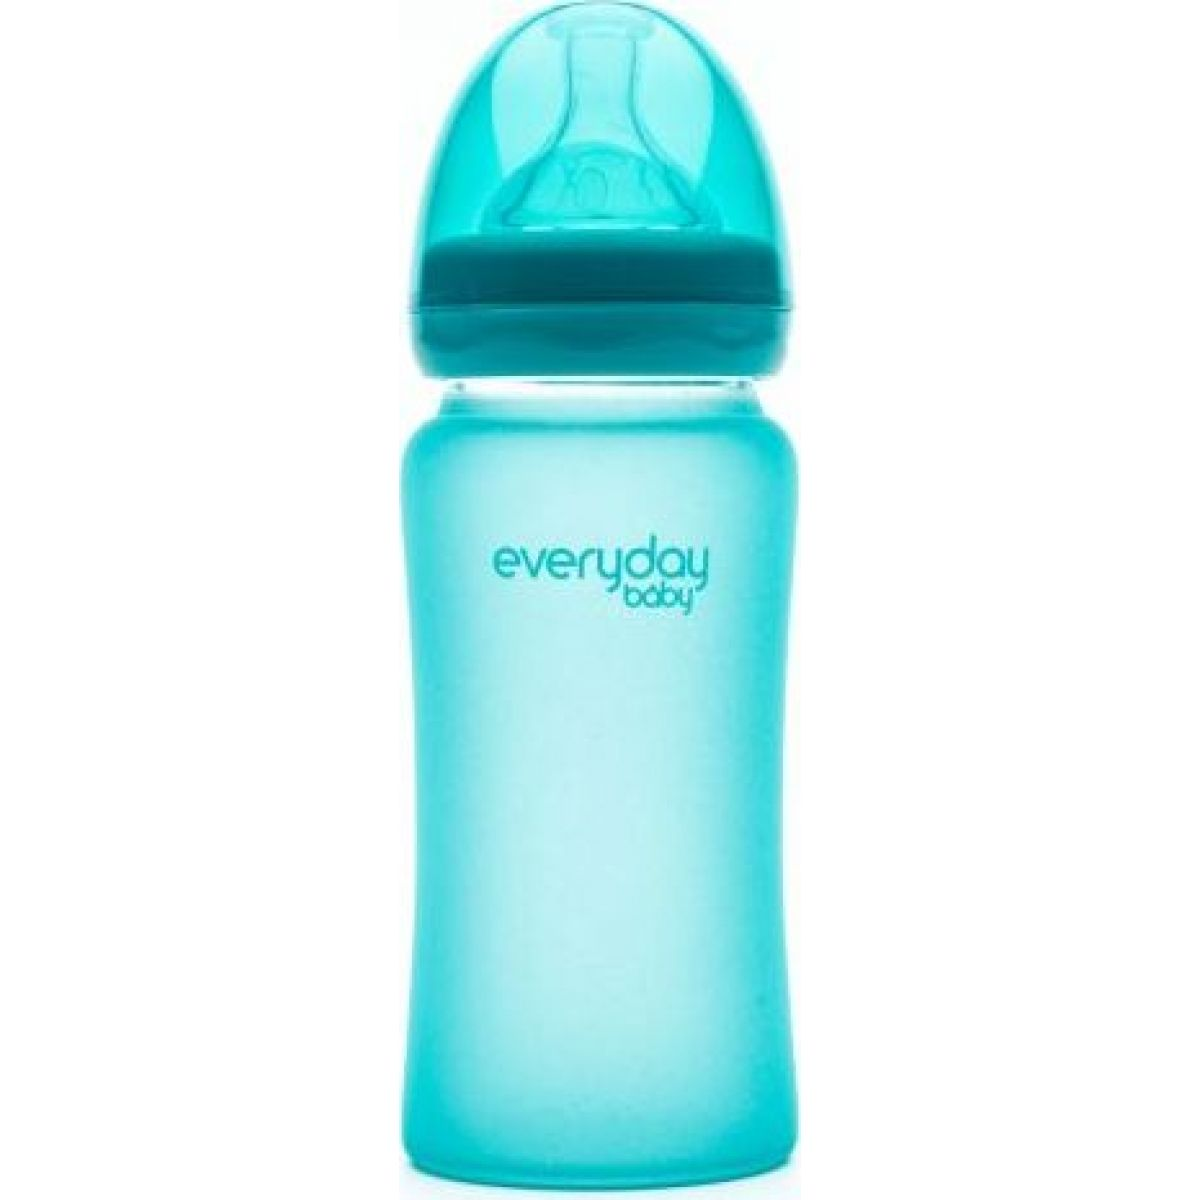 Everyday Baby Láhev sklo senzor 240 ml turquoise